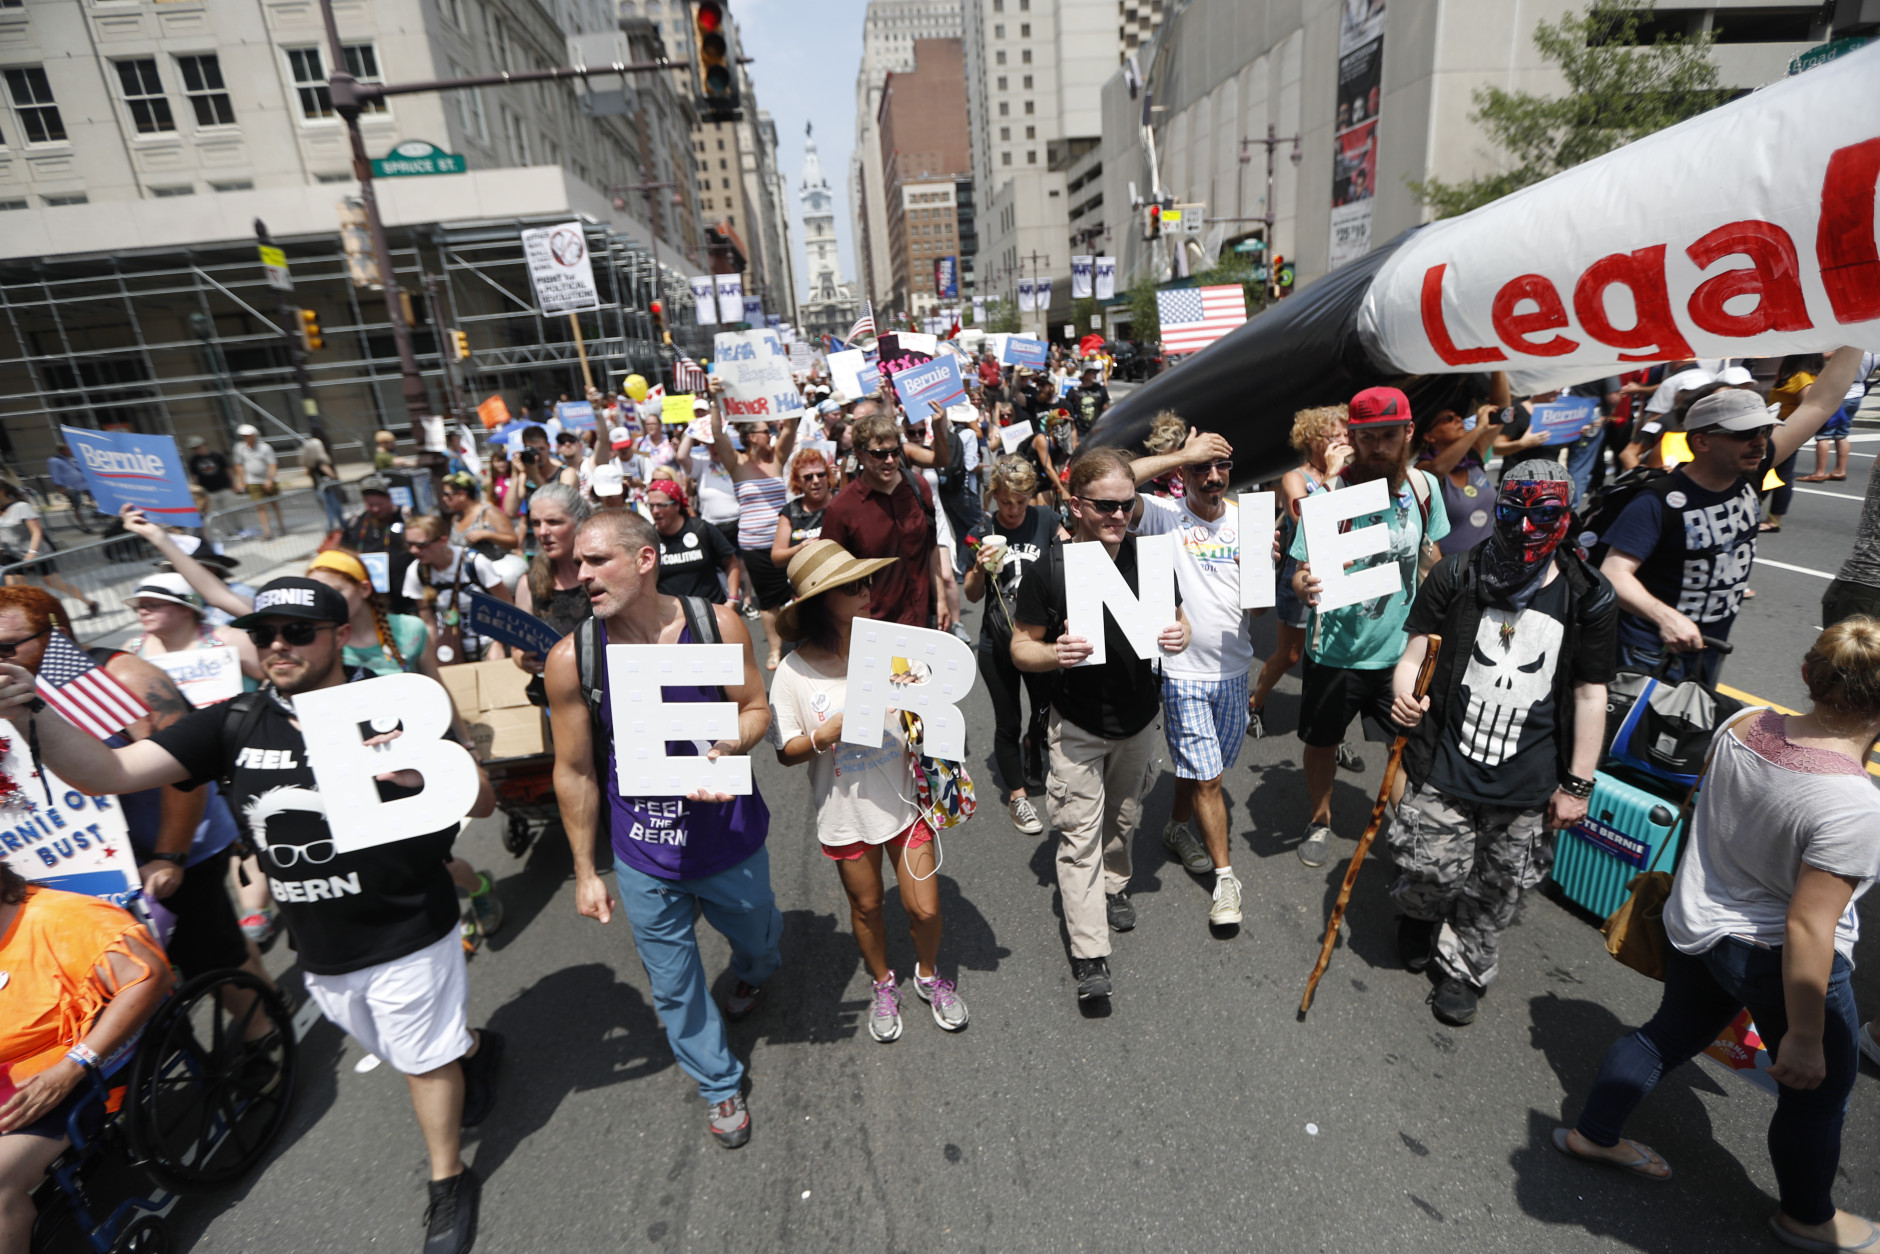 Supporters of Sen. Bernie Sanders, I-Vt., march during a protest in downtown on, Monday, July 25, 2016, in Philadelphia, during the first day of the Democratic National Convention. (AP Photo/John Minchillo)